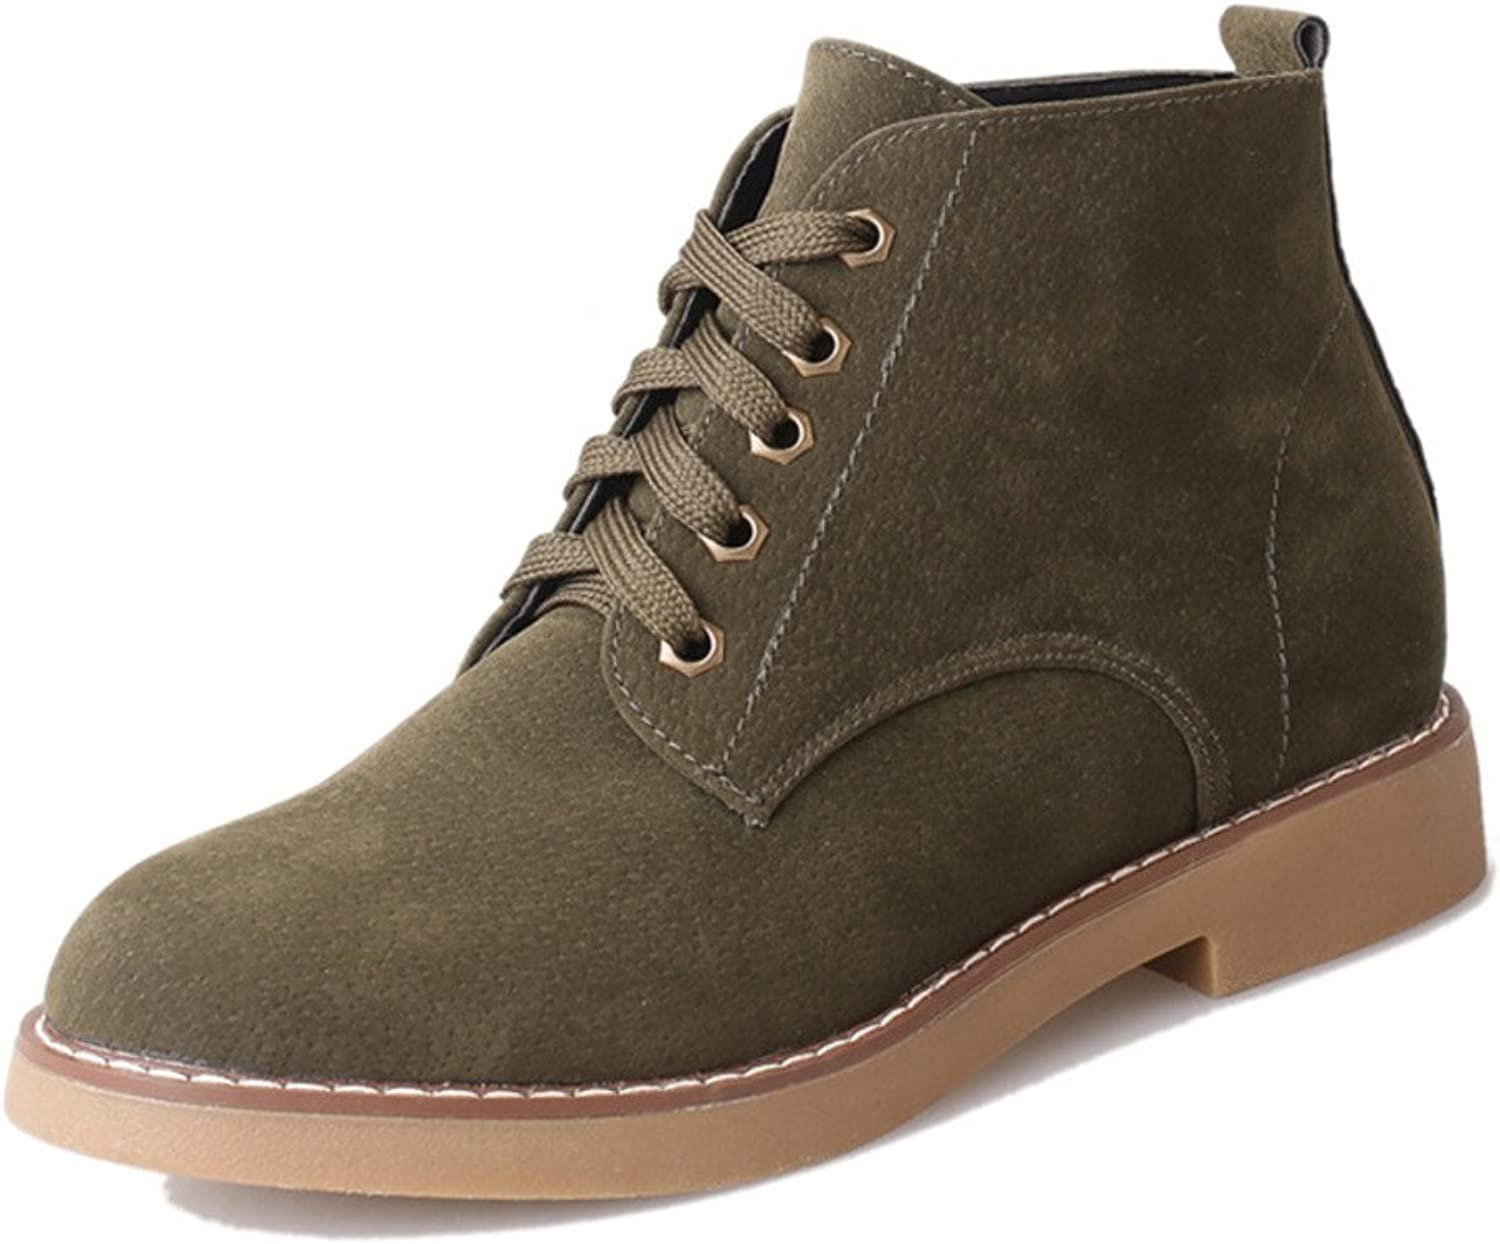 Huhuj England Vintage Short Boots for Fall Winter Students Flock with a Short Barrel and Bare Boots High Boots Lady Martin Boots